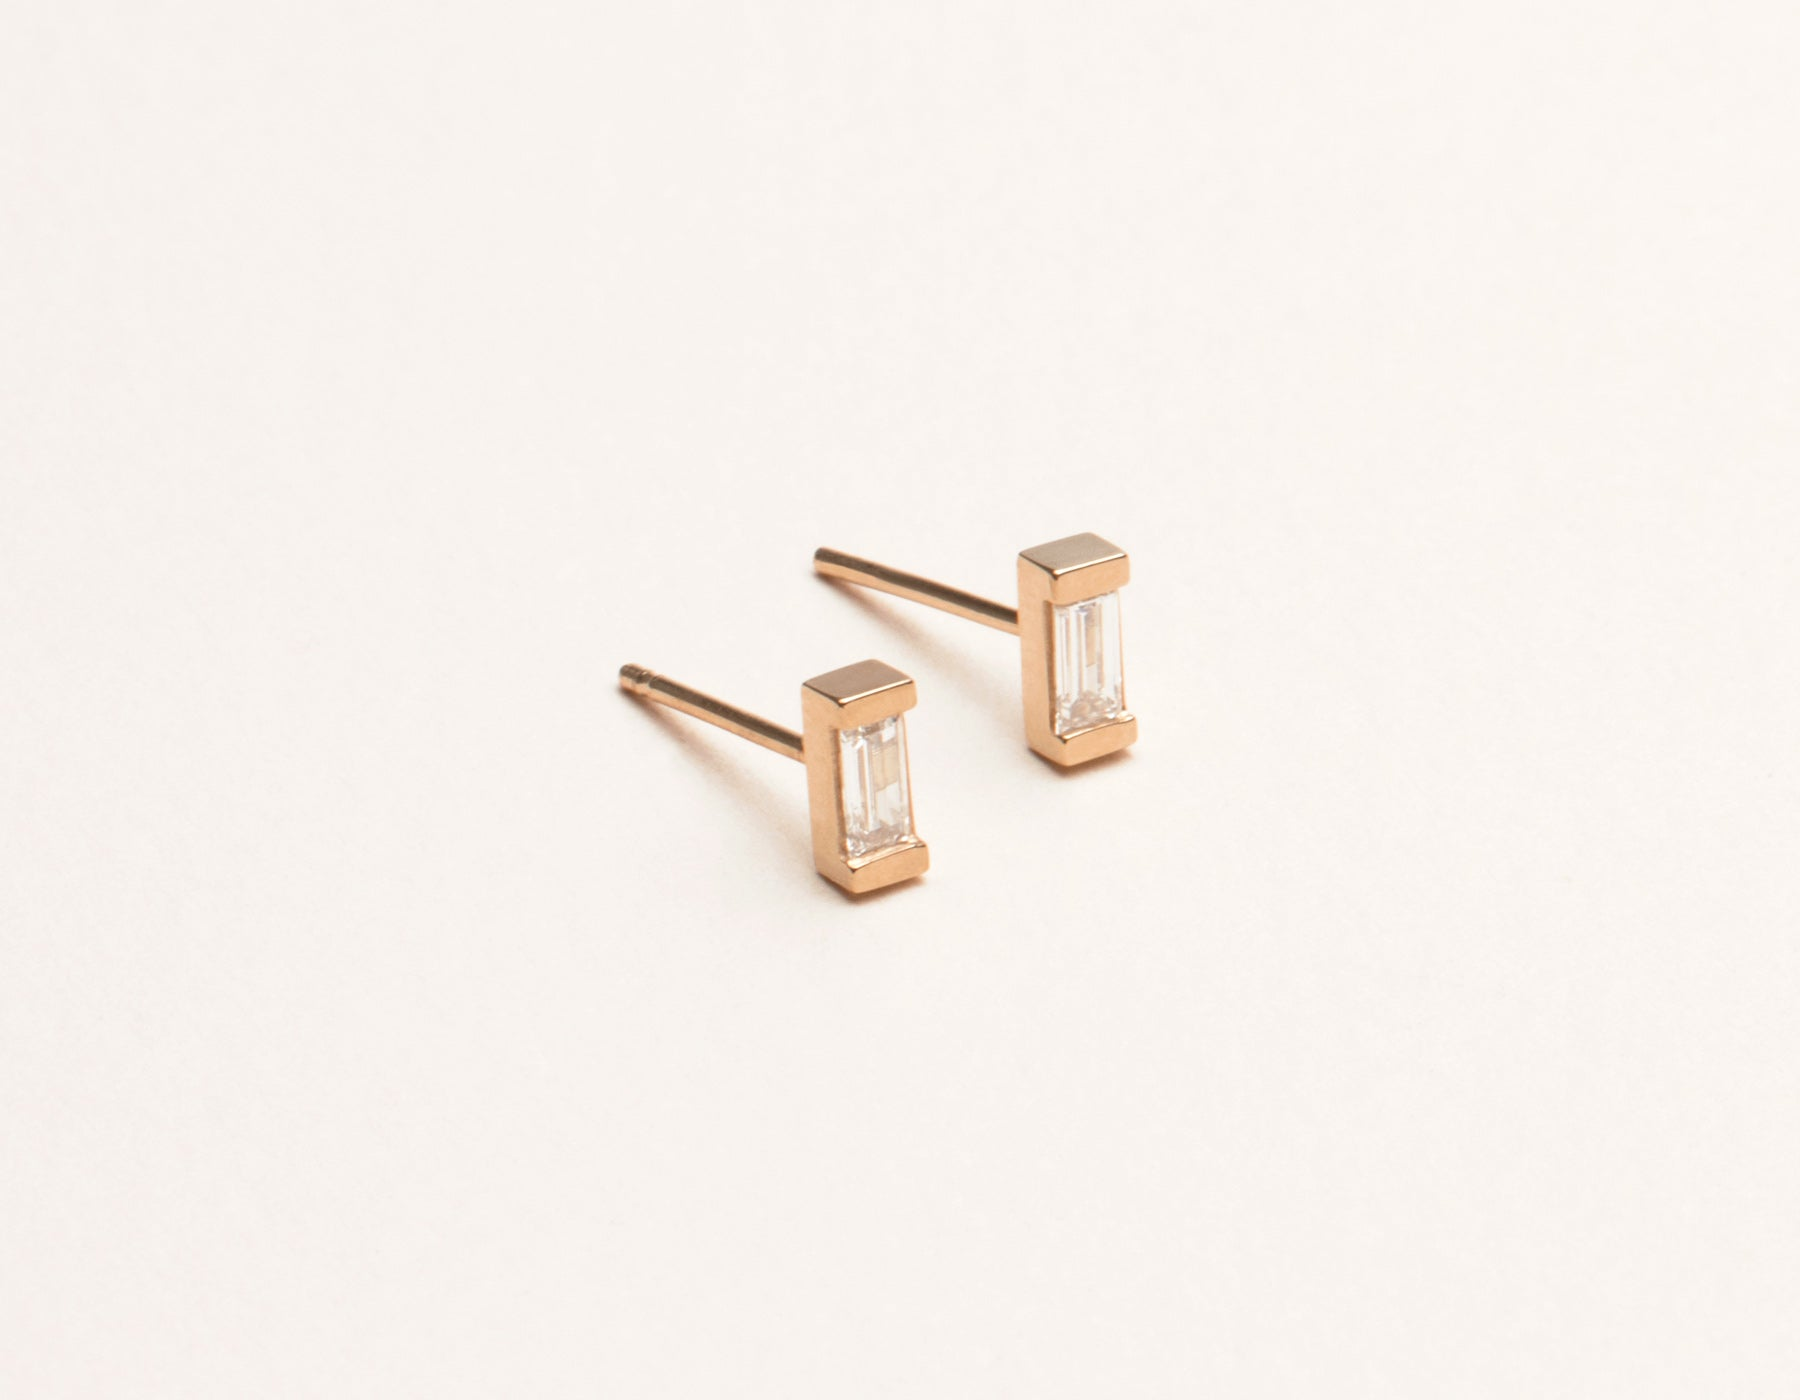 dipped gold earrings stud dogeared simple cross small